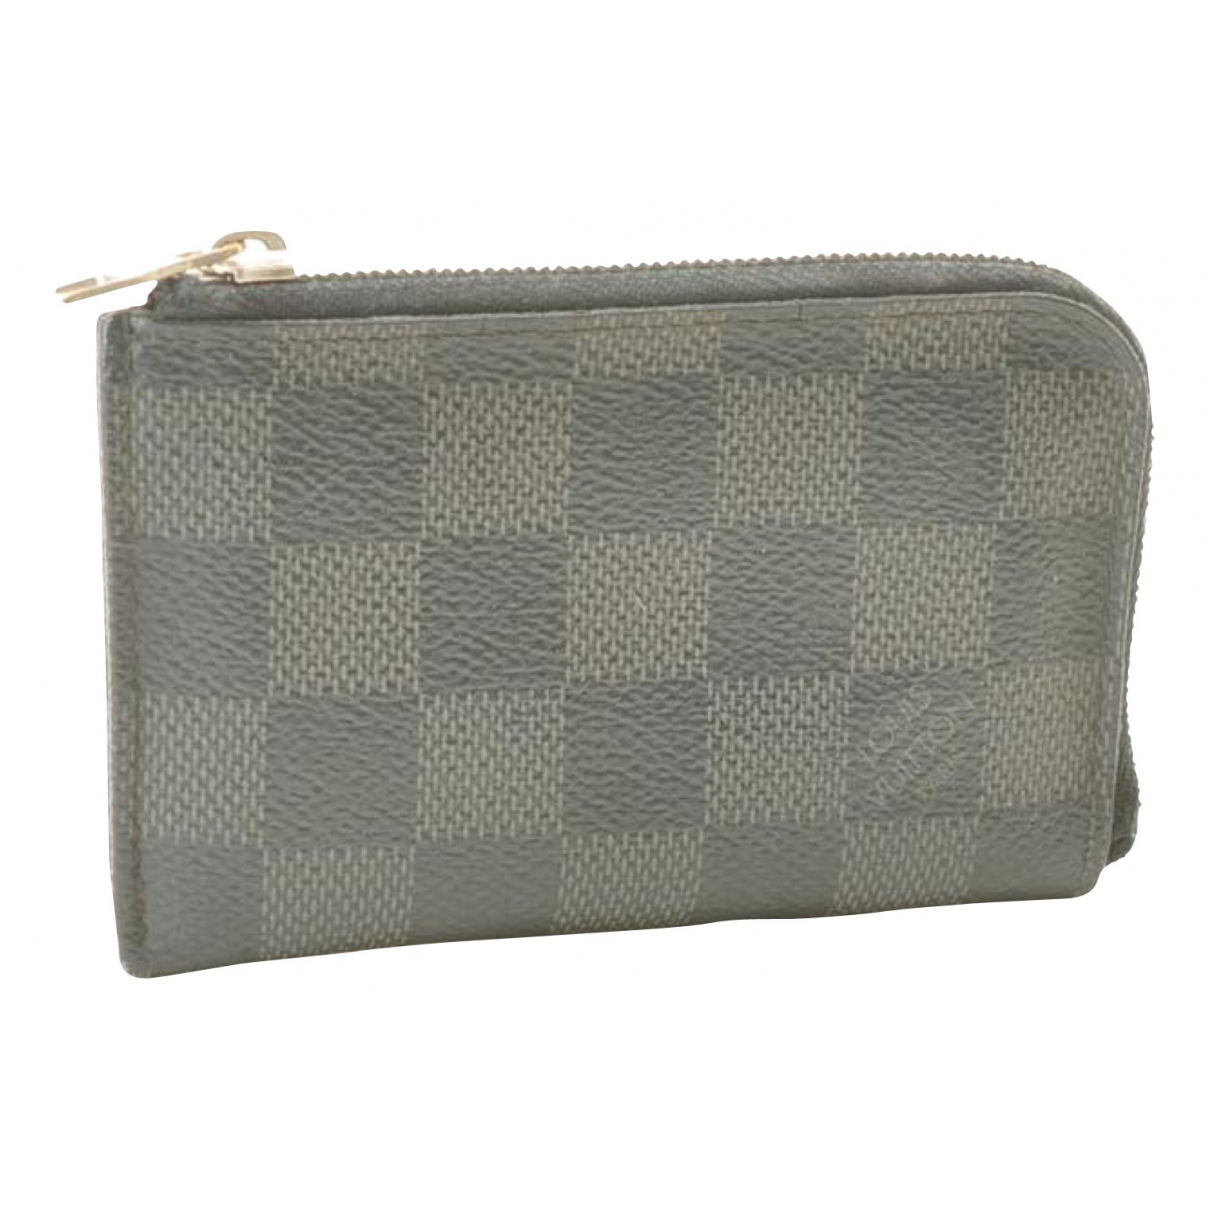 Louis Vuitton N Grey Cloth Purses, wallet & cases for Women N